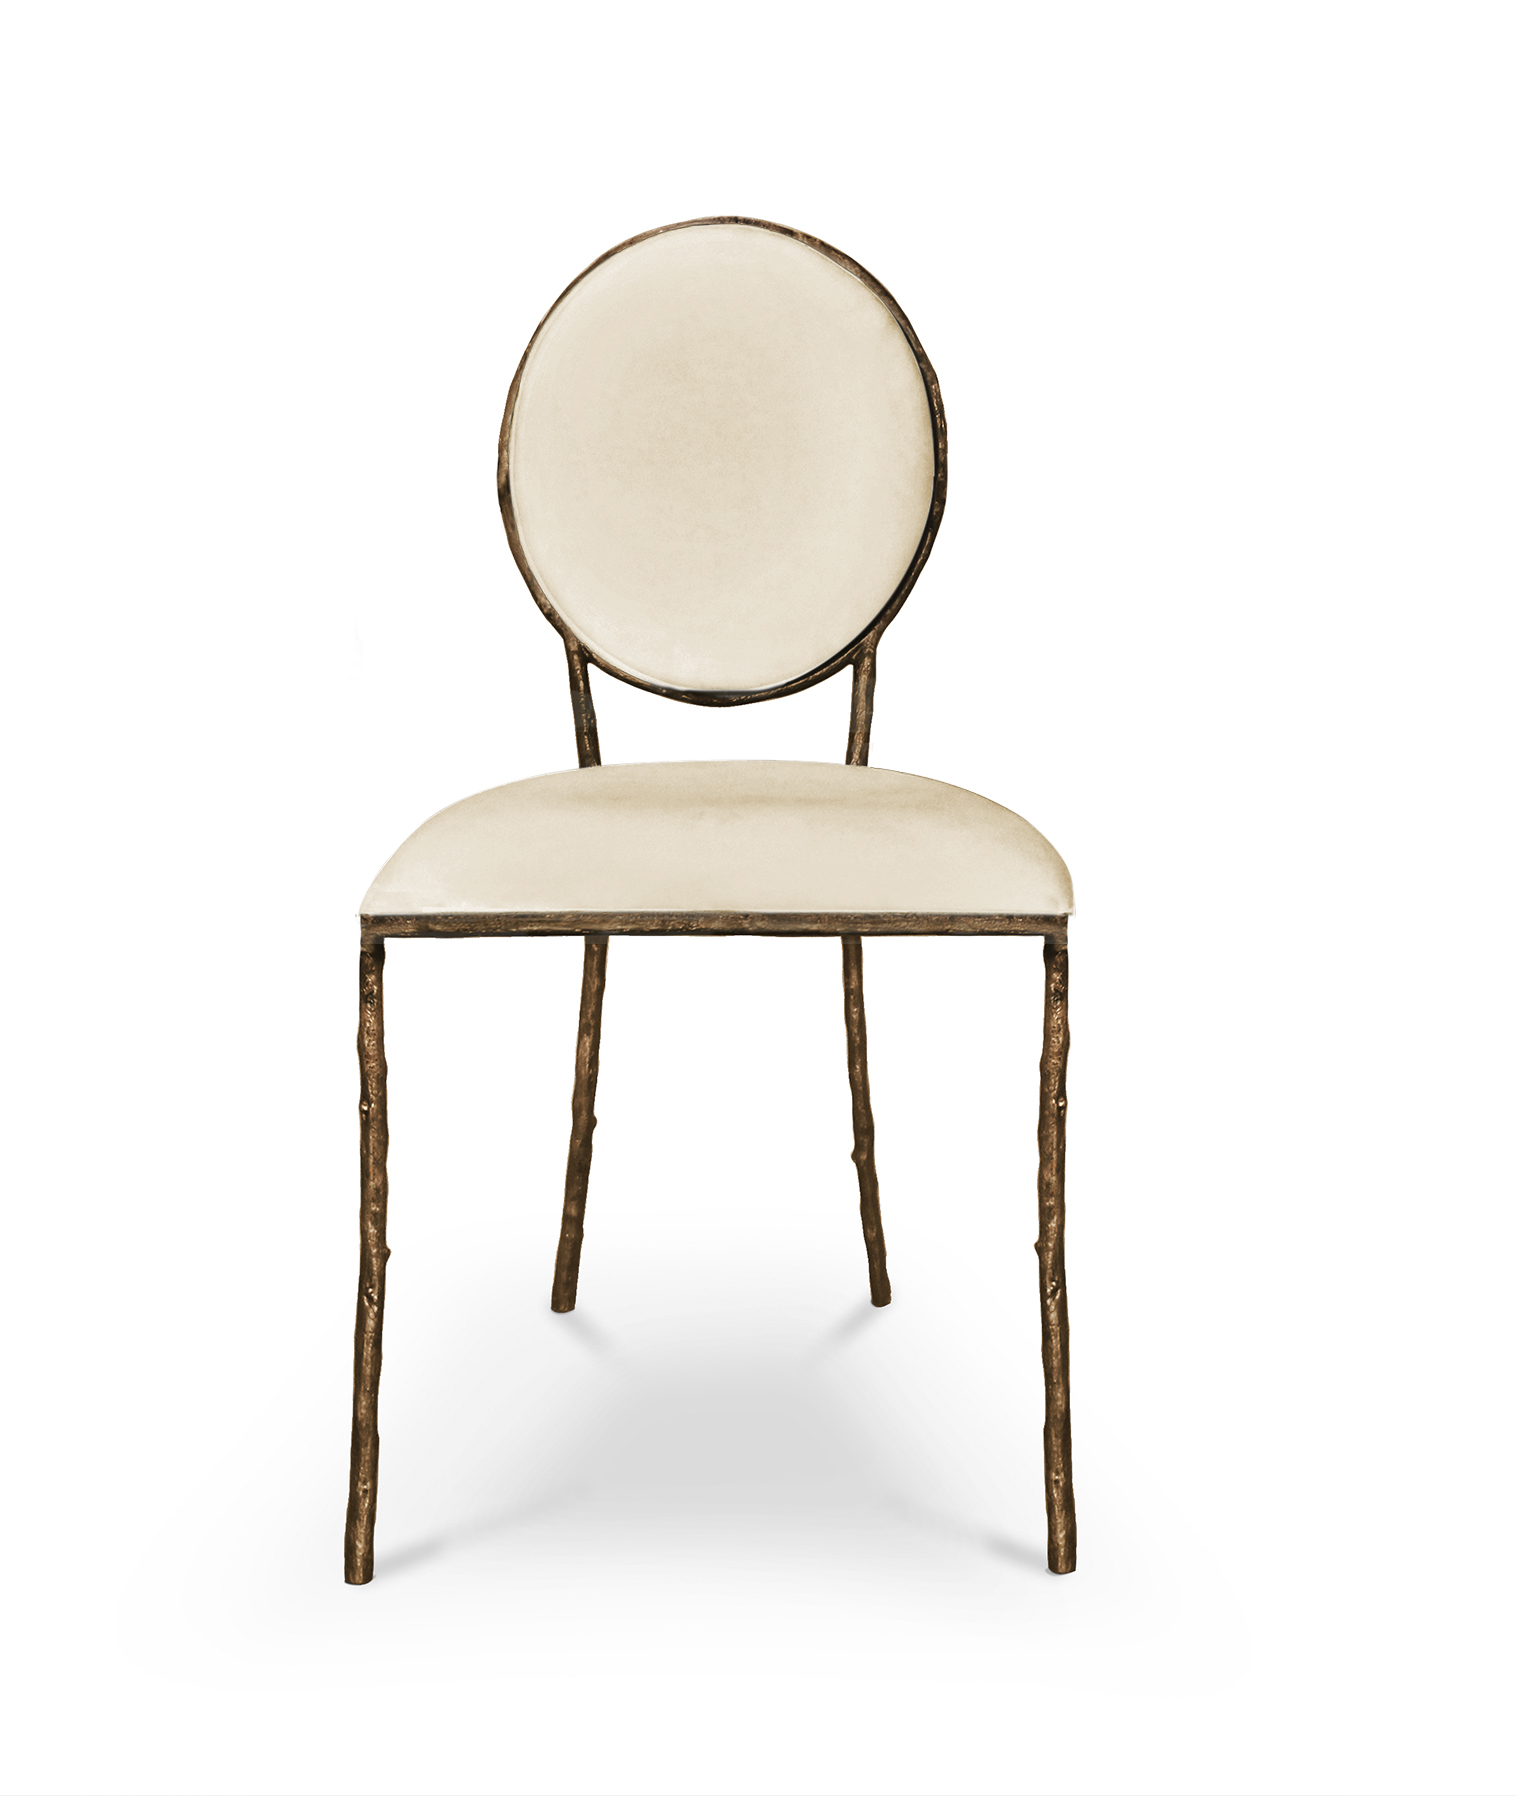 great selection of dining chairs to stylish your dining room